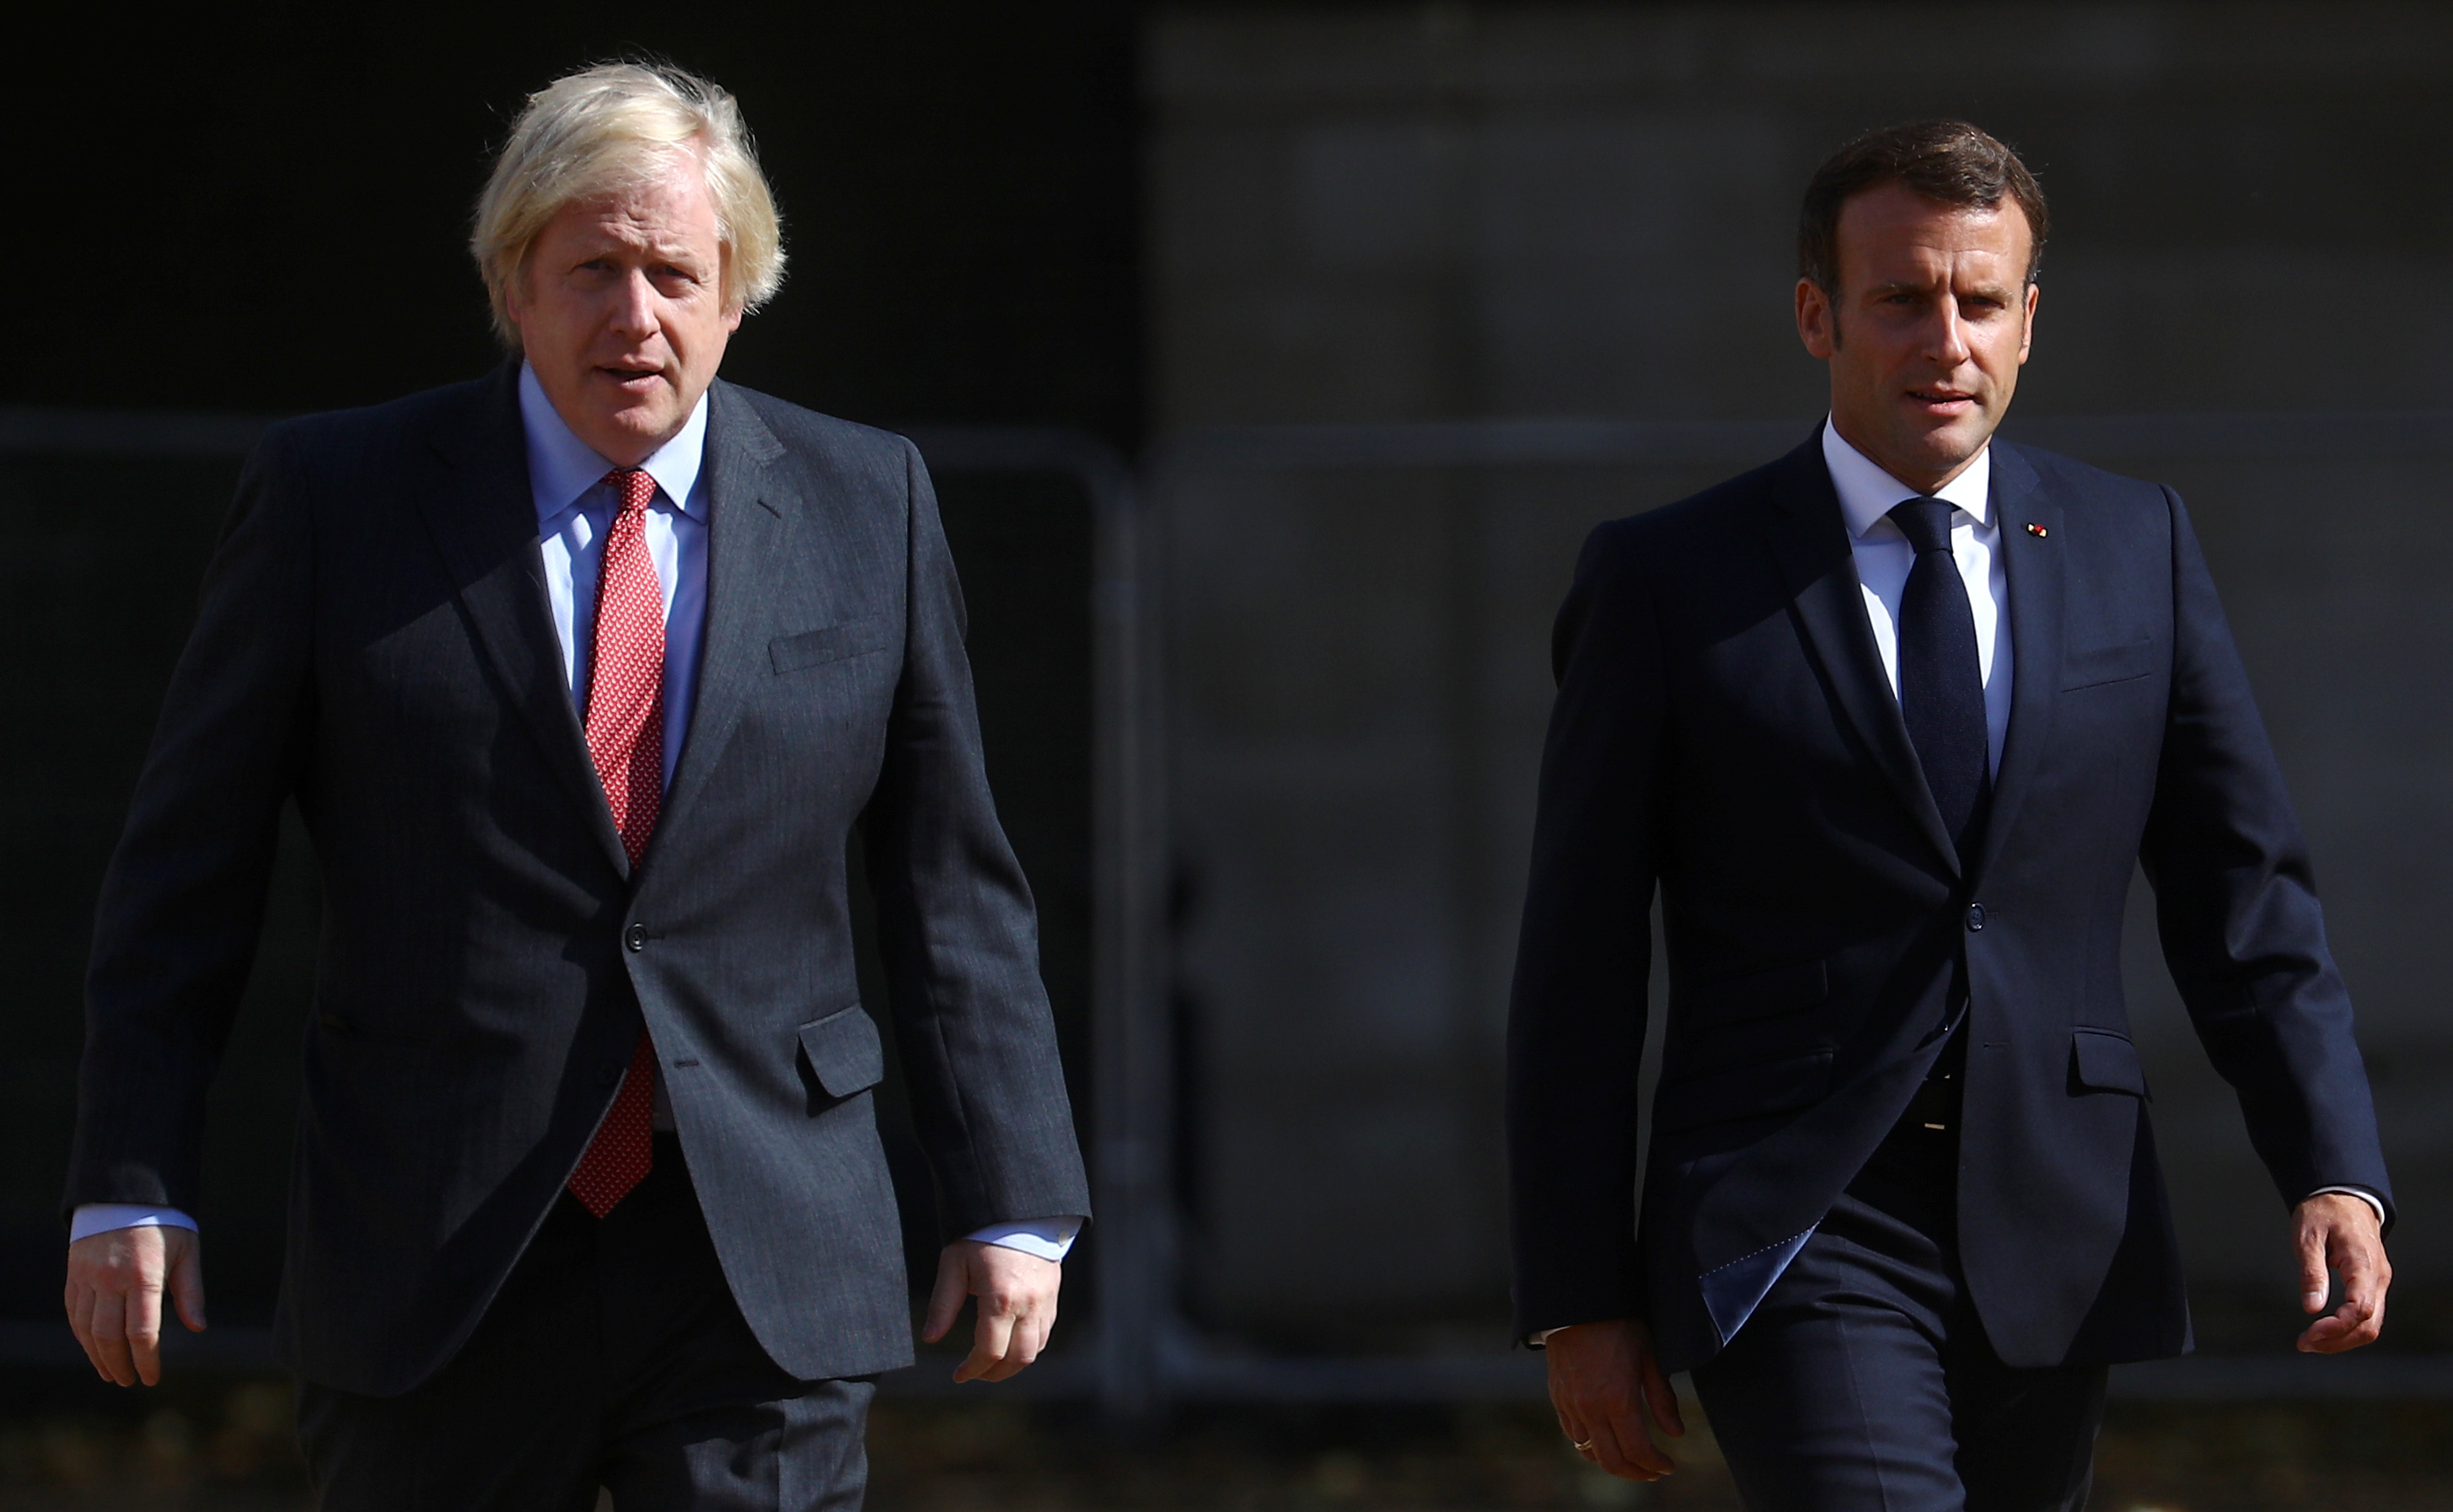 British Prime Minister Boris Johnson and French President Emmanuel Macron walk after watching The Red Arrows and La Patrouille de France perform a flypast, at Horse Guards Parade in London, Britain, June 18, 2020. REUTERS/Hannah McKay/Pool